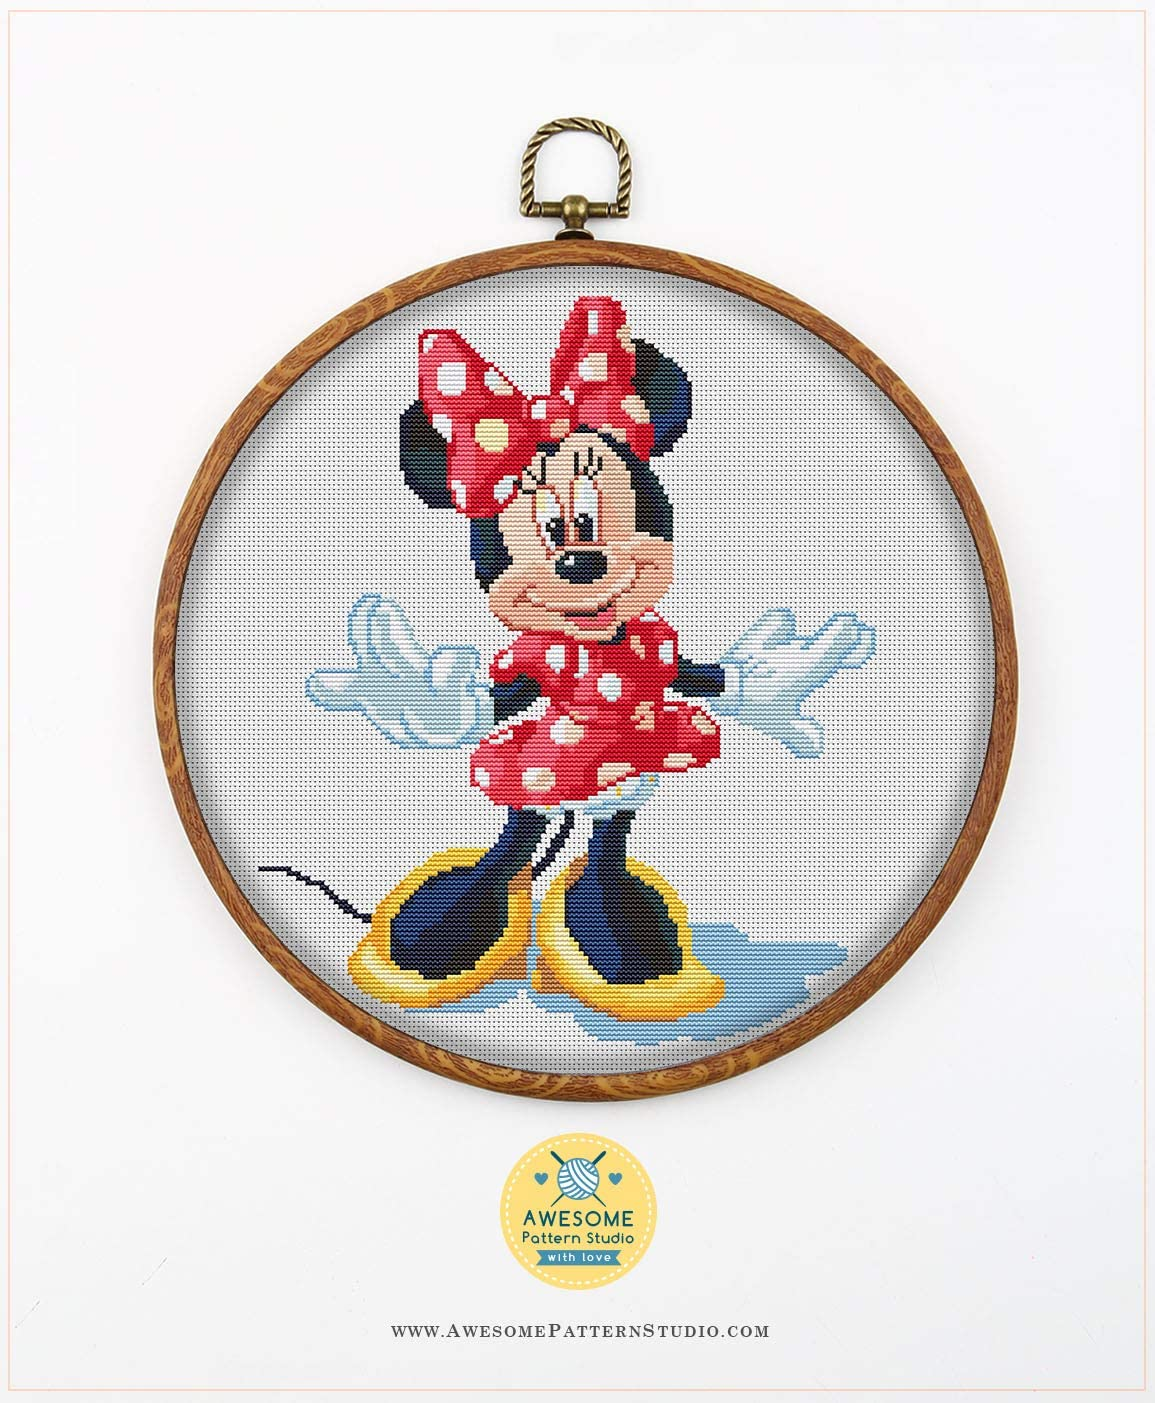 Embroidery Pattern Kit Fabrick and 4 Printed Color Schemes Inside Mulan K194 Counted Cross Stitch KIT#2 Needles Threads